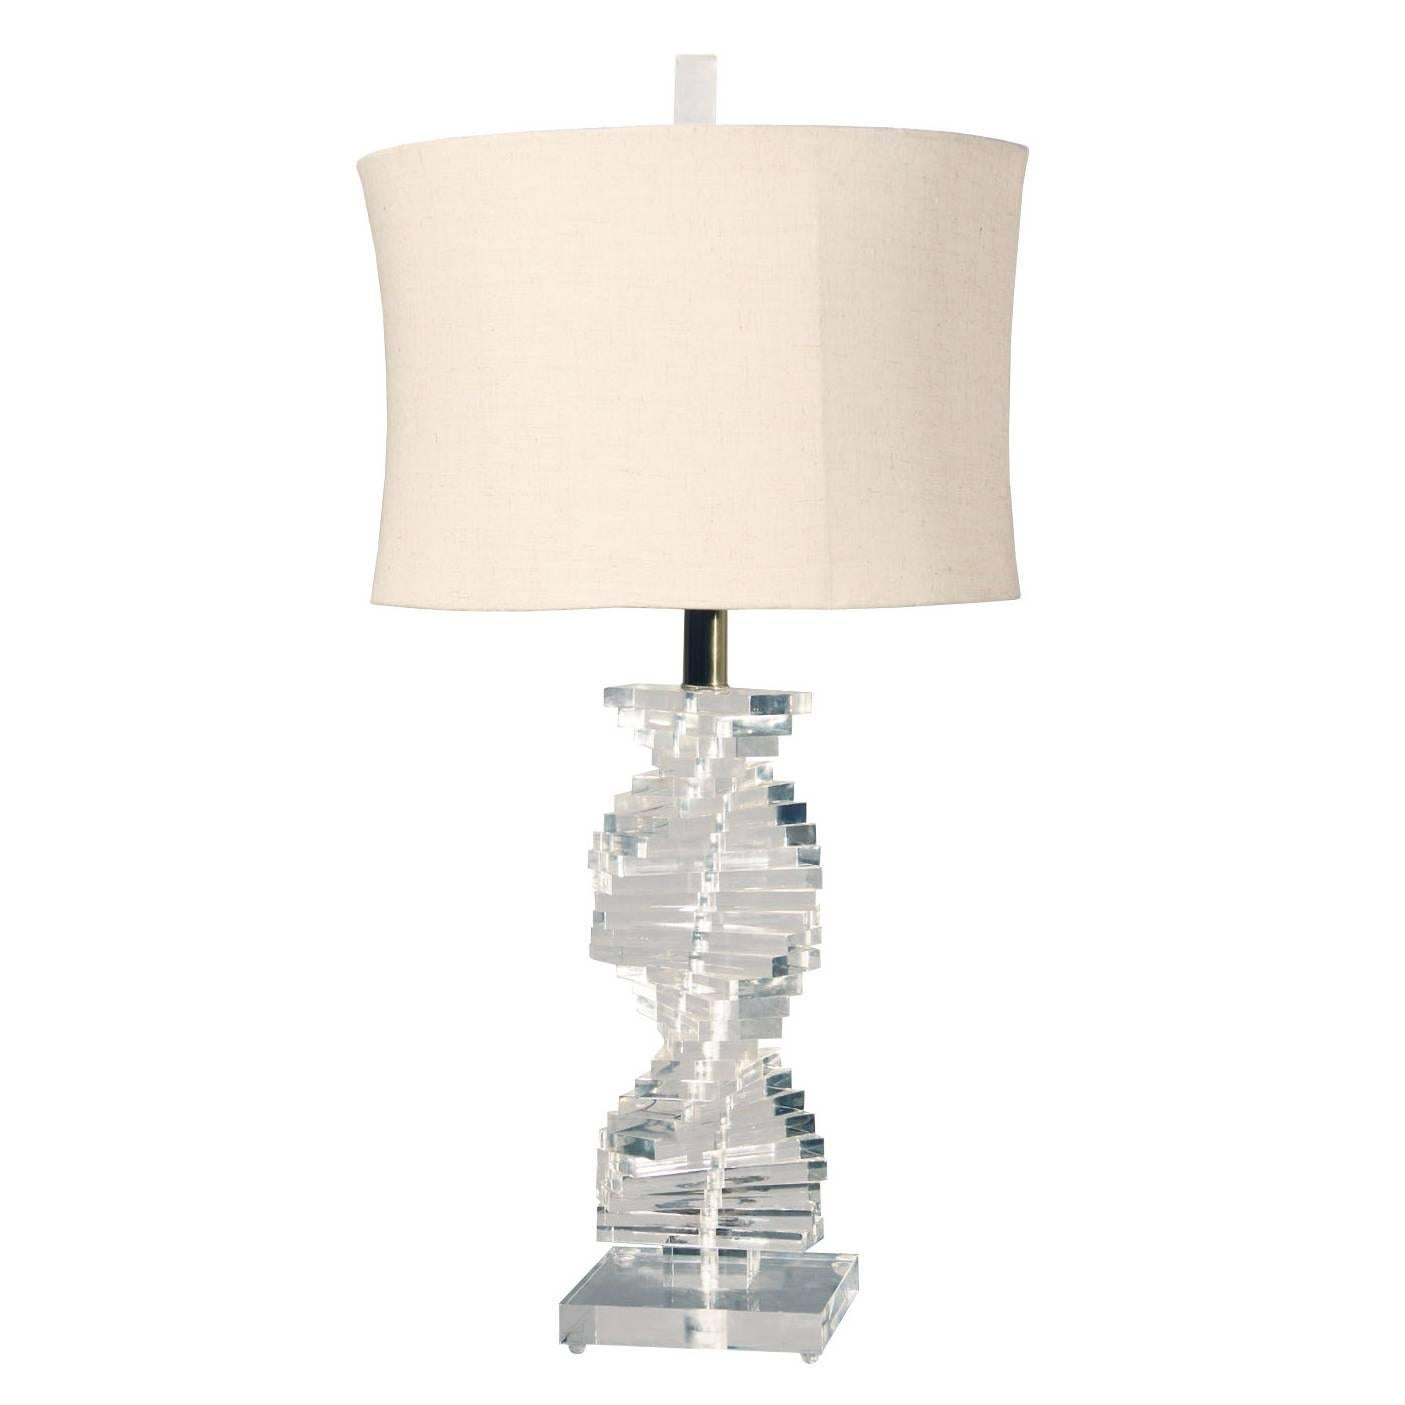 Vintage Helix Spiral Lucite Table Lamp